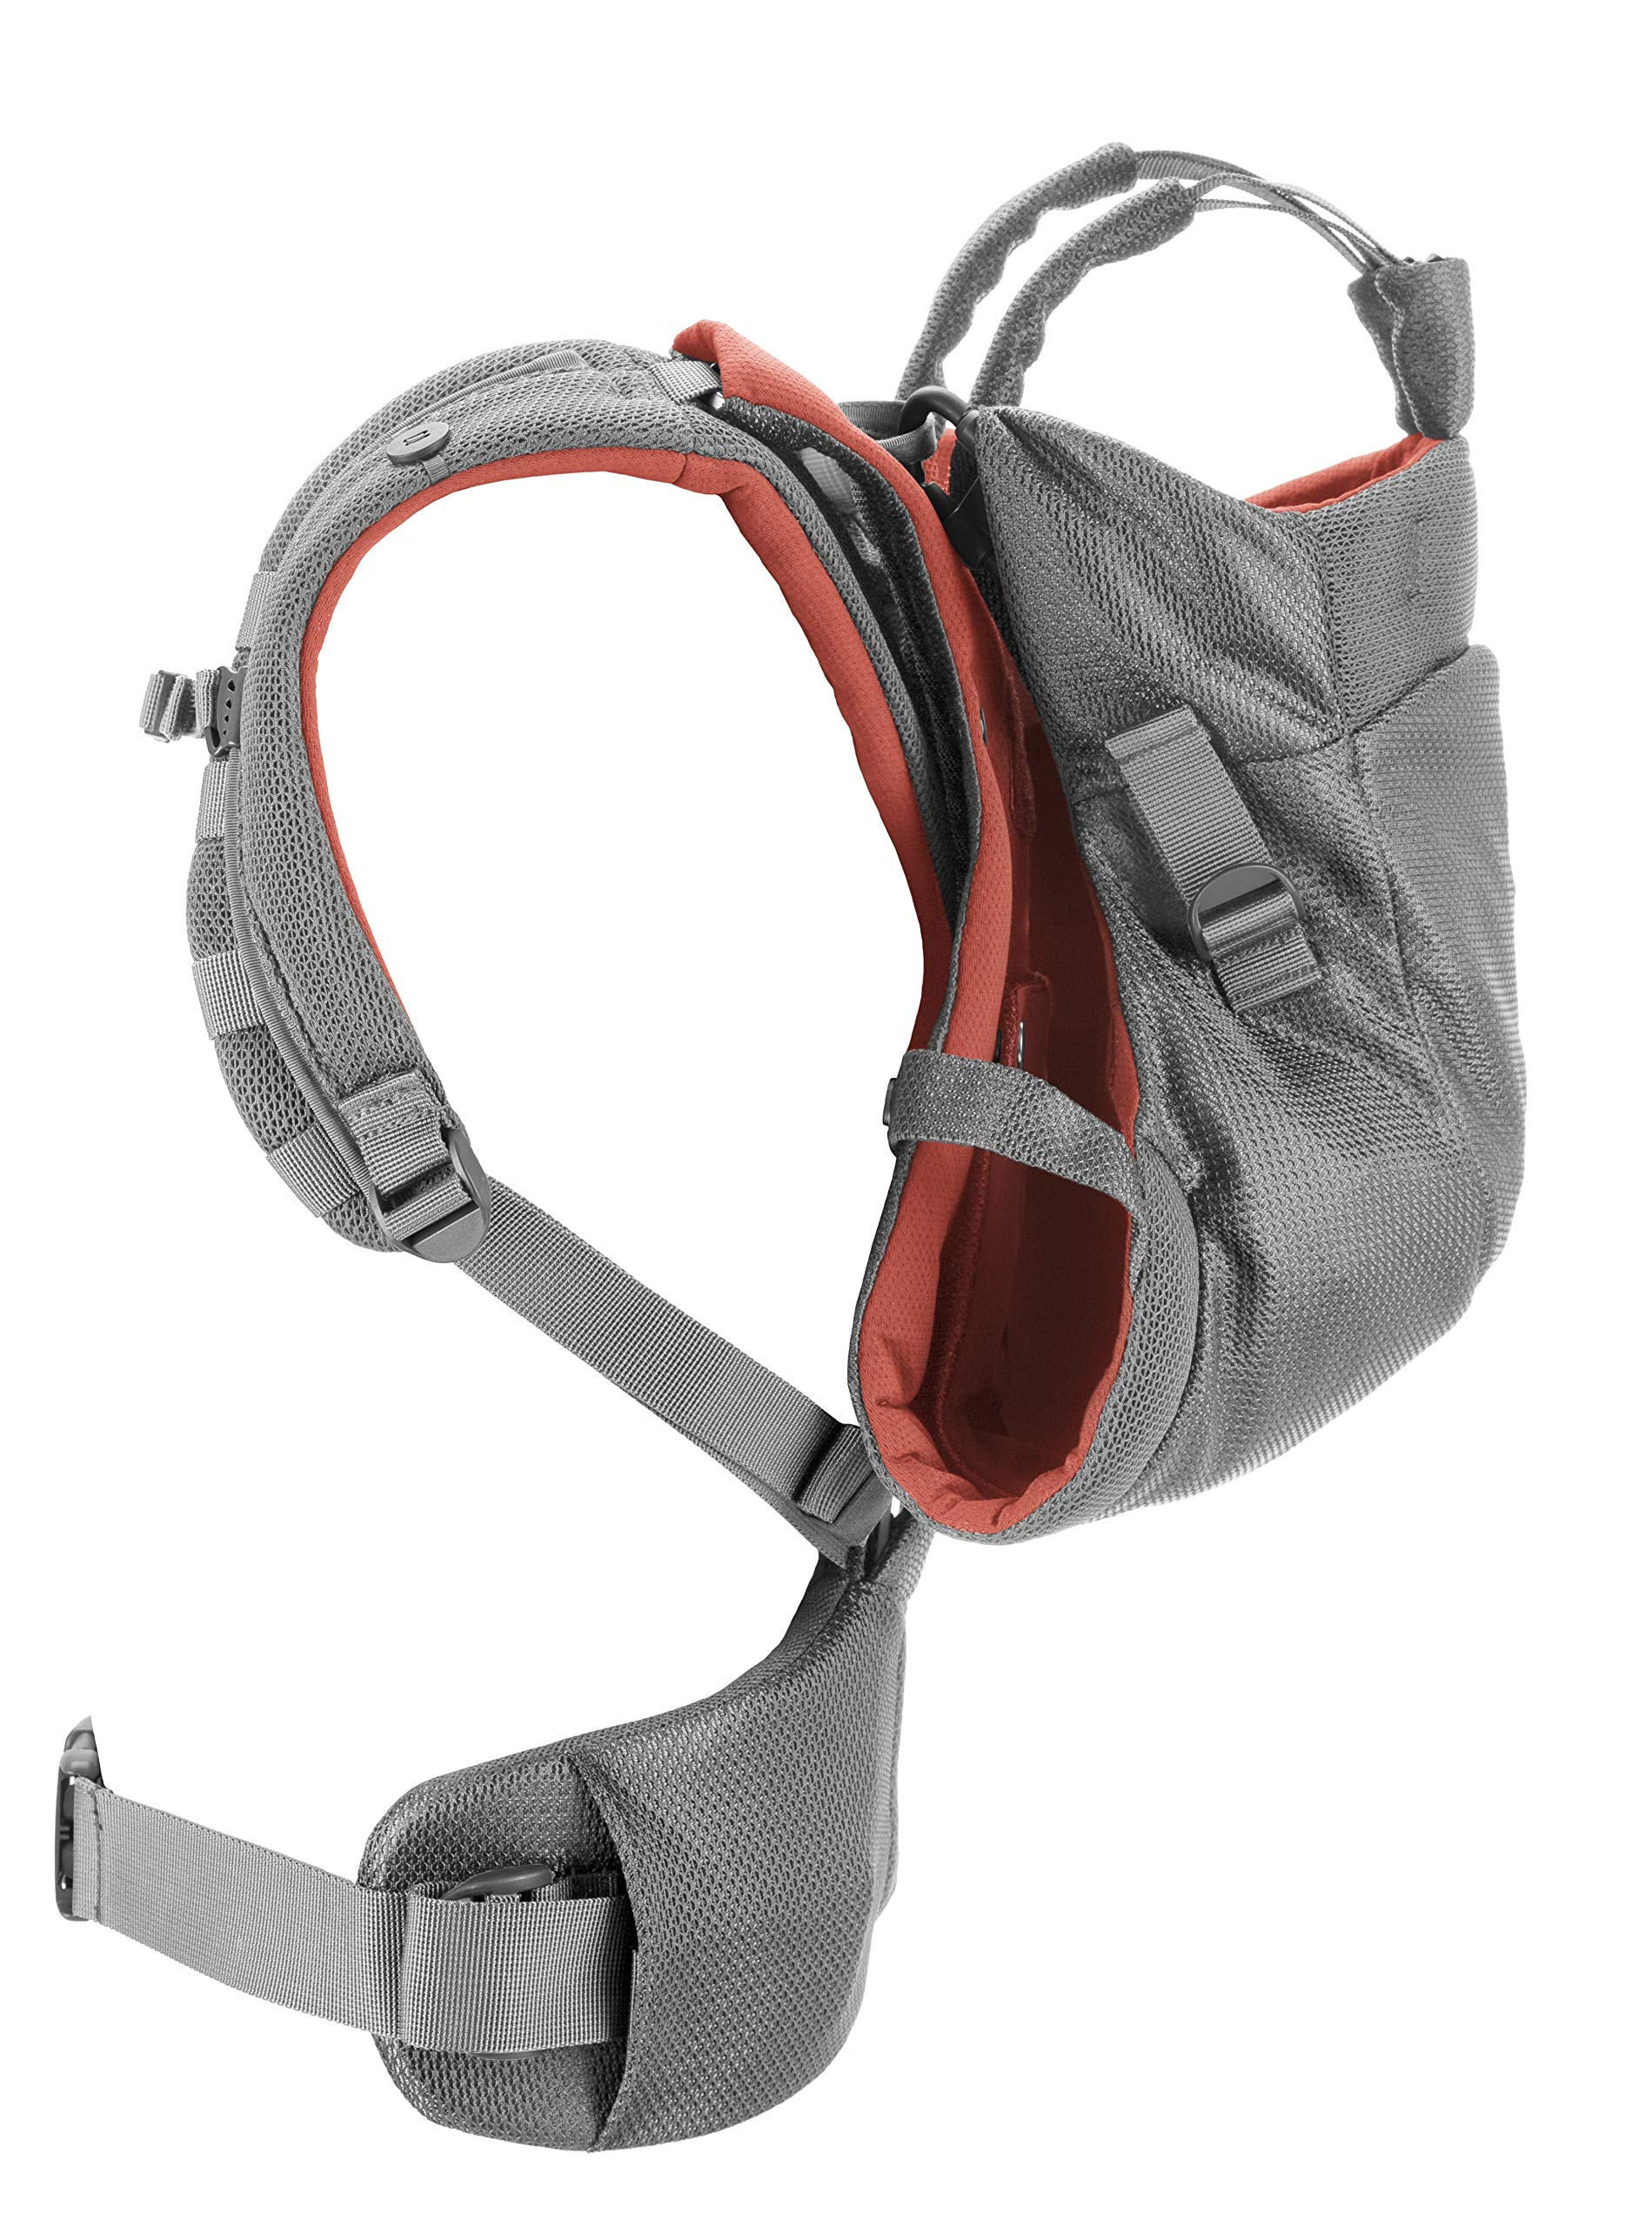 Stokke MyCarrier Back Carrier - Baby Carrier for Toddlers - Accessories for 3 in 1 Organic Cotton Carrying System - Ultralight & Ergonomic - Color: Coral Mesh Stokke With the MyCarrier wrap newborns feel sheltered when being close to the parents. From 9 months onwards the world can be discovered comfortably with the supplementary back carrier Research confirms that babies are much calmer and cry less when they feel the body heat and movements of their parents - the STOKKE MyCarrier provides this safe and secure feeling The 3 in 1 baby carrier allows three different carrying positions - on the stomach, either facing the parent or outwards and on the back with the back carrier suitable from 9 months 3